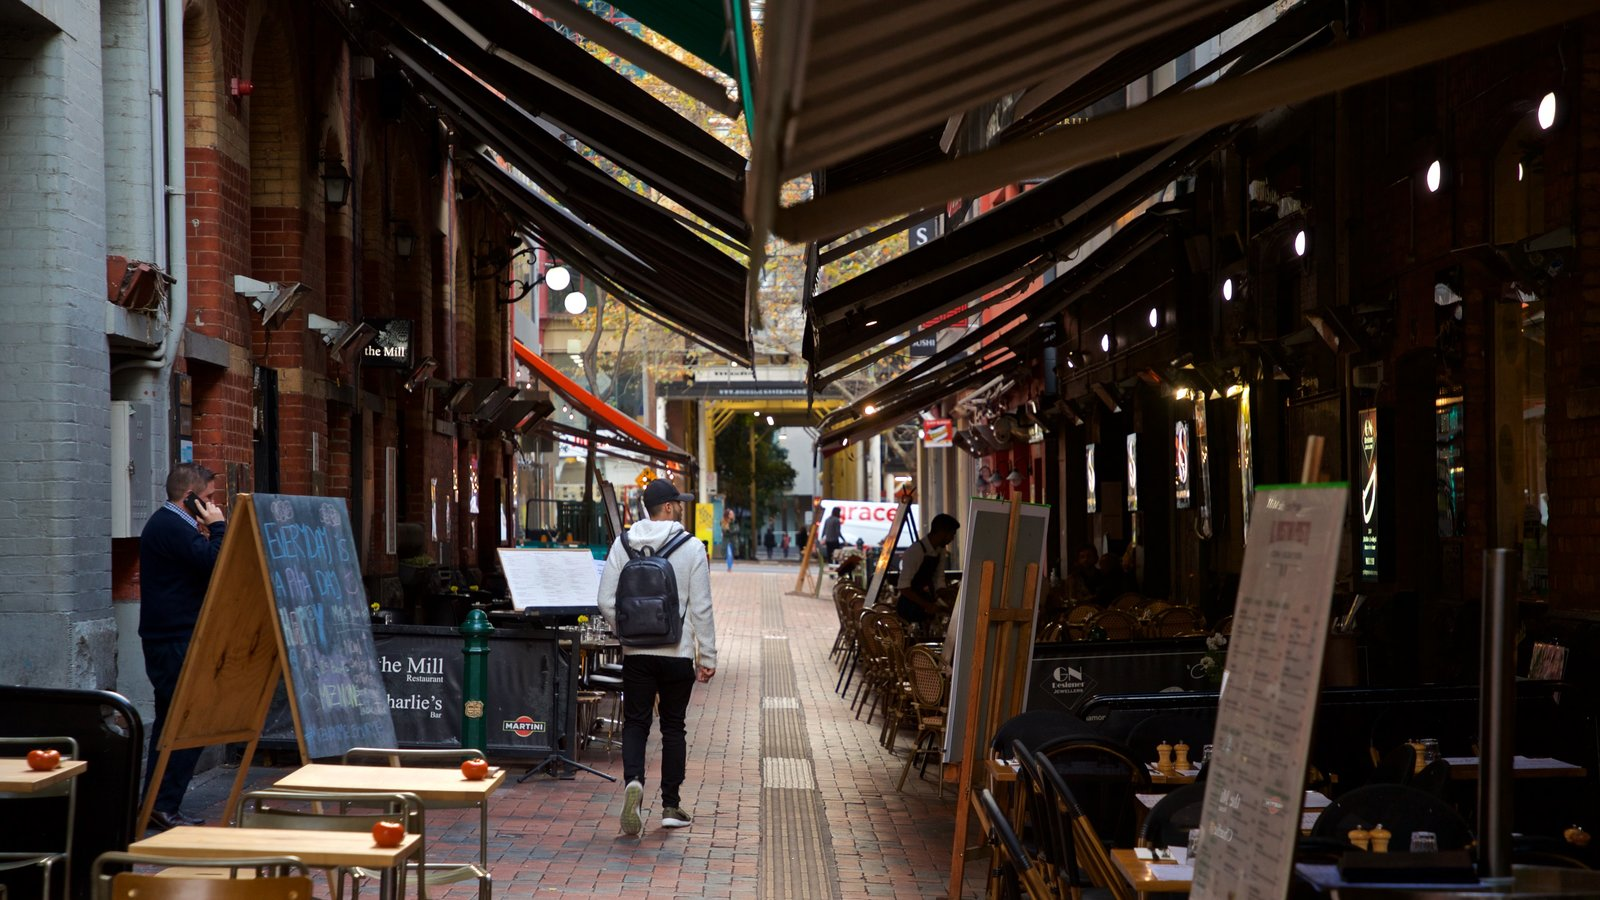 Hardware Lane featuring street scenes as well as an individual male